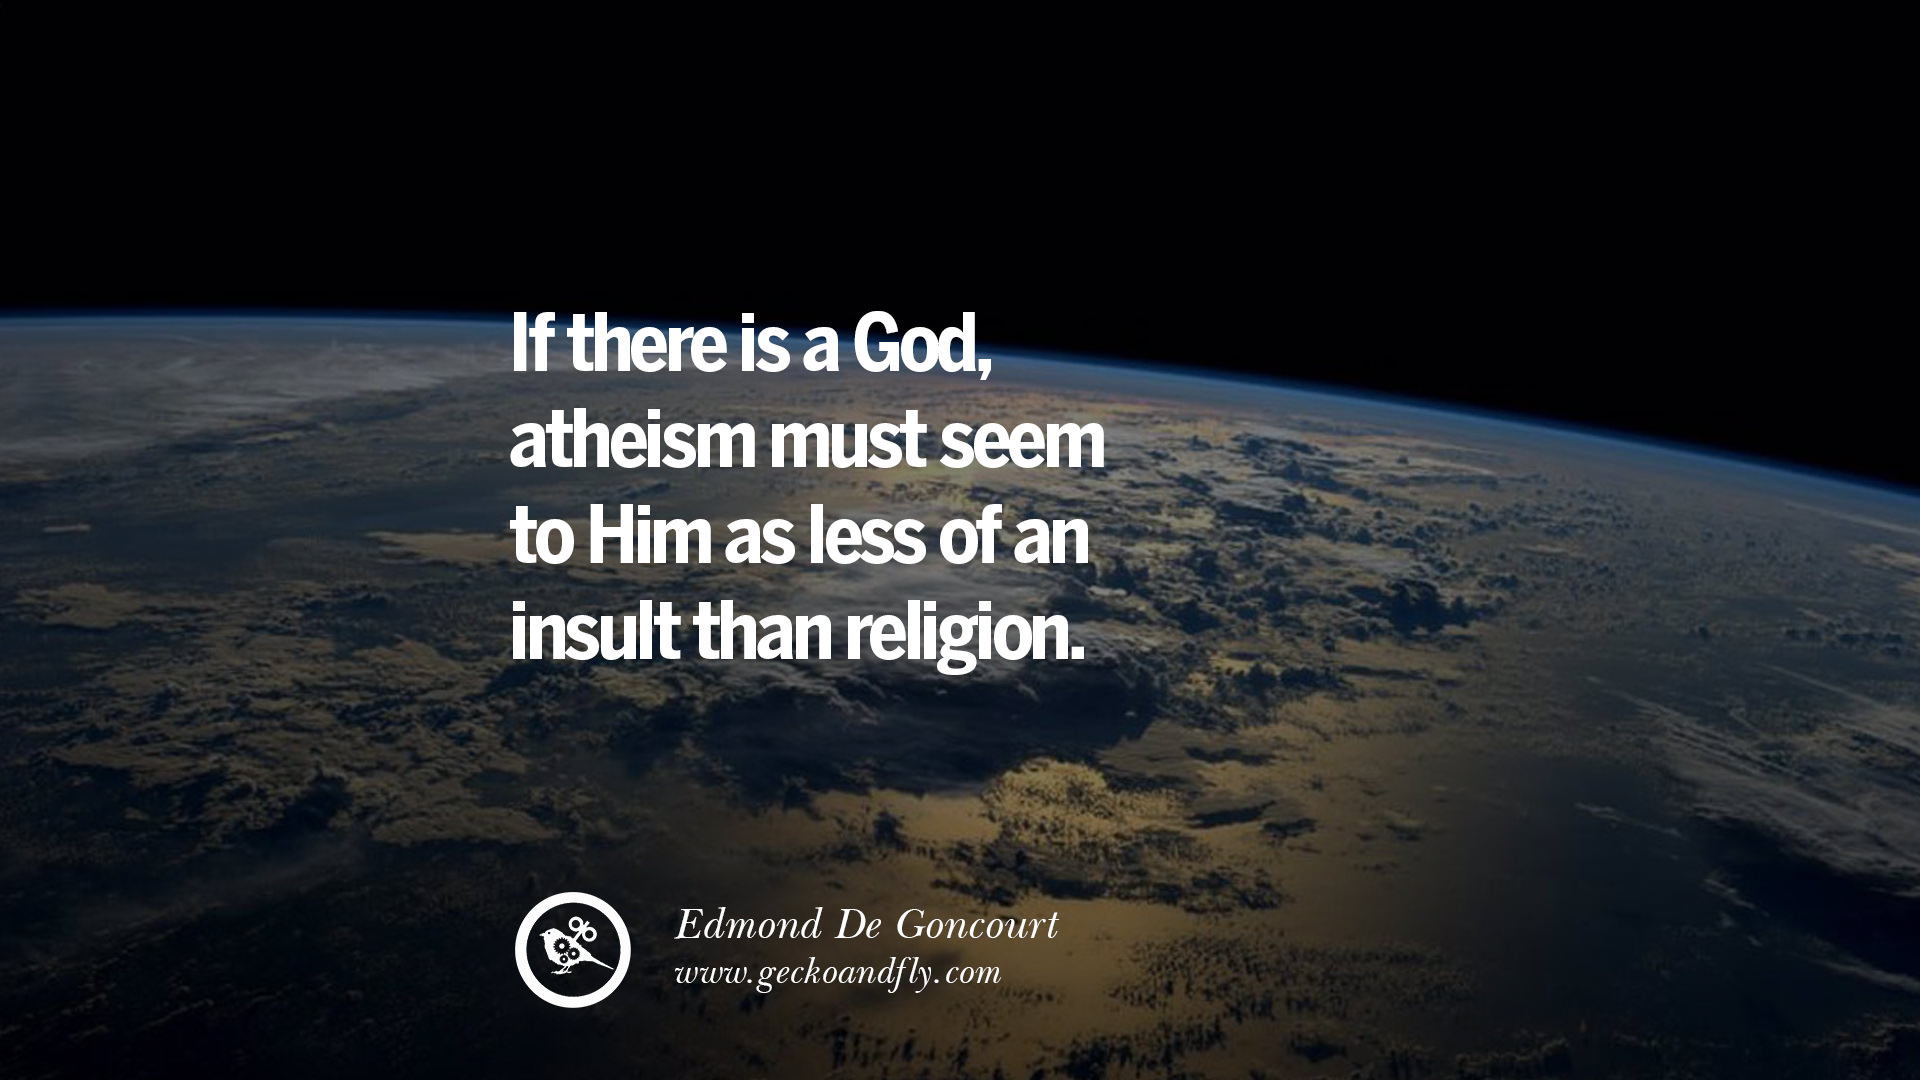 Atheist Quotes | 27 Funny Atheist Quotes And Saying For None Religious Person